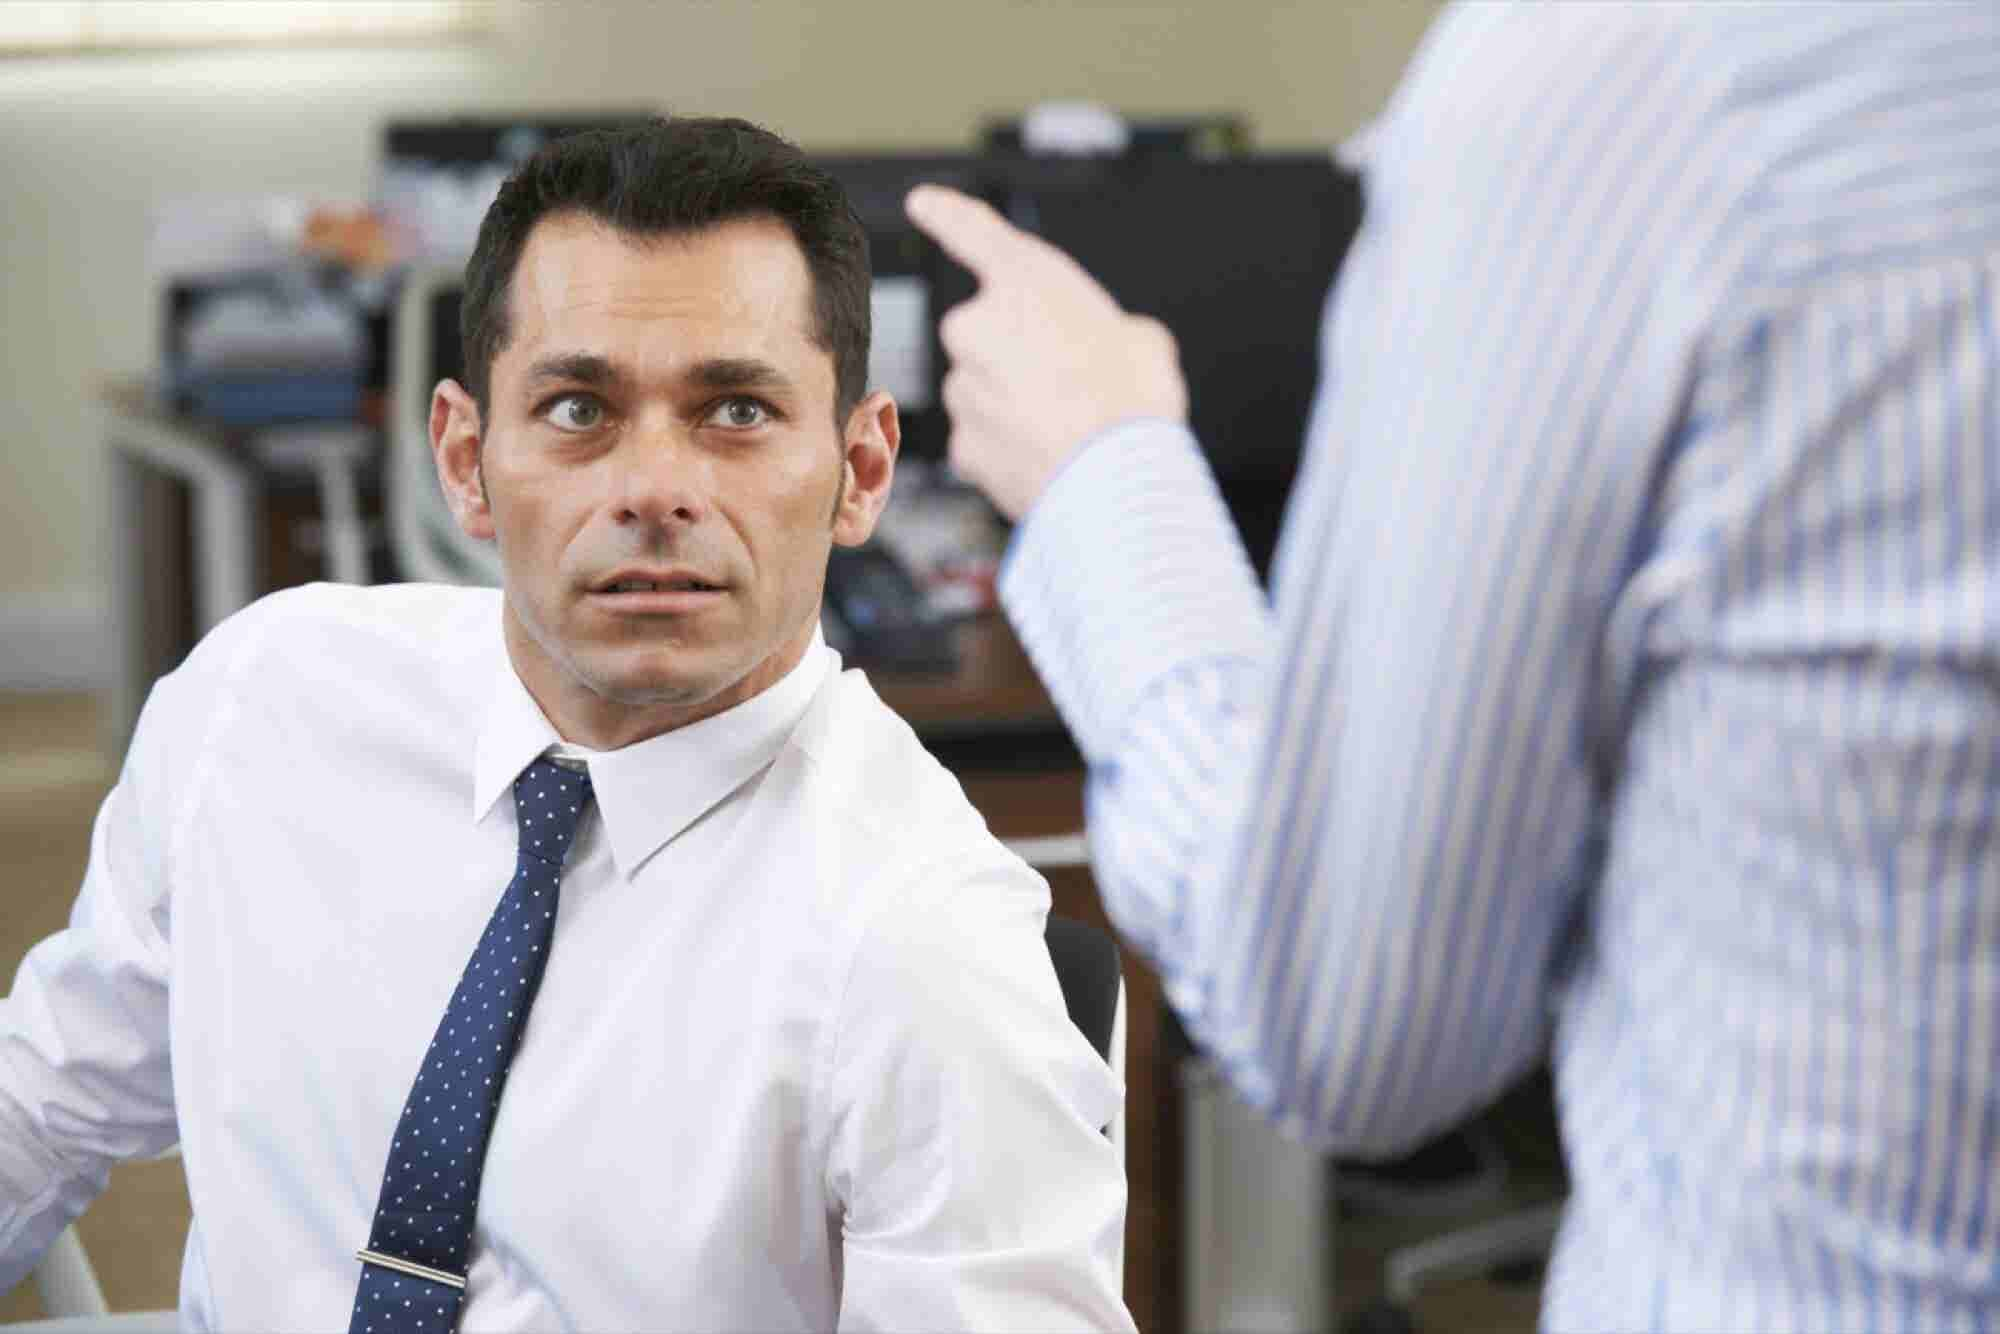 Are You a Terrible Boss? These 4 Subtle Signs Will Tell You.